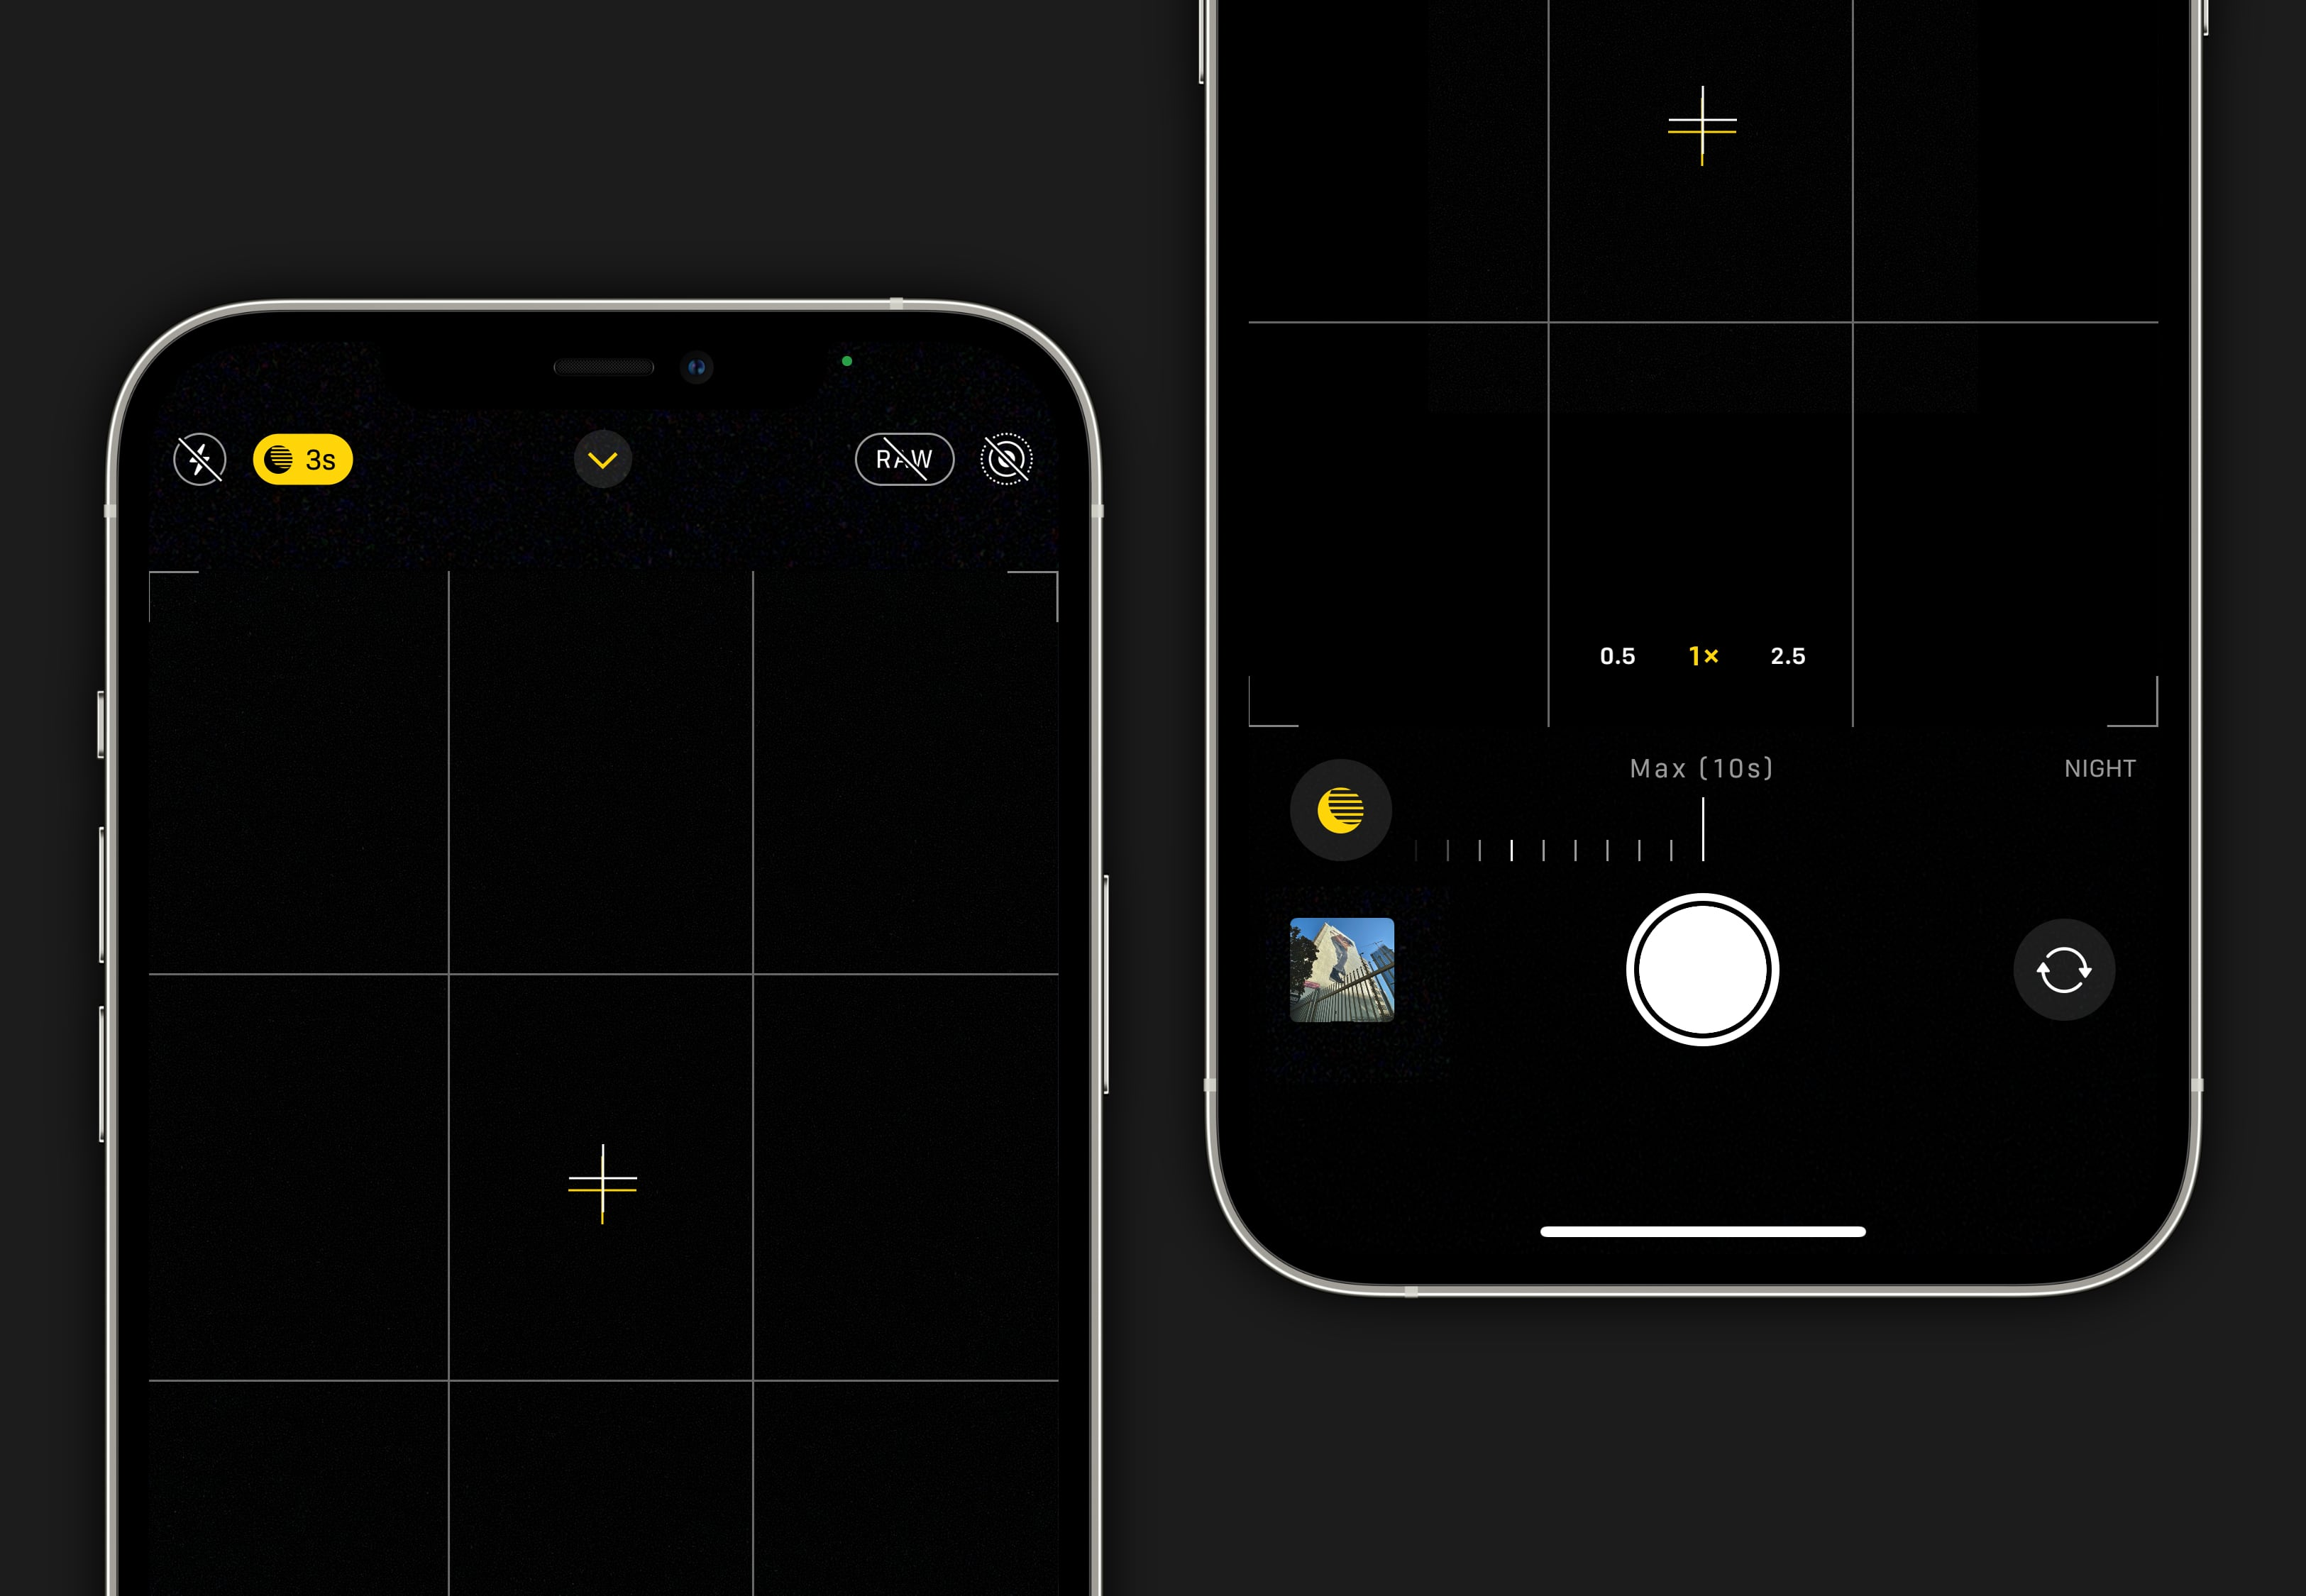 """Tap the yellow Night mode control in the camera app to adjust exposure. If you have access to a tripod, the """"Max"""" time setting will produce the best results."""